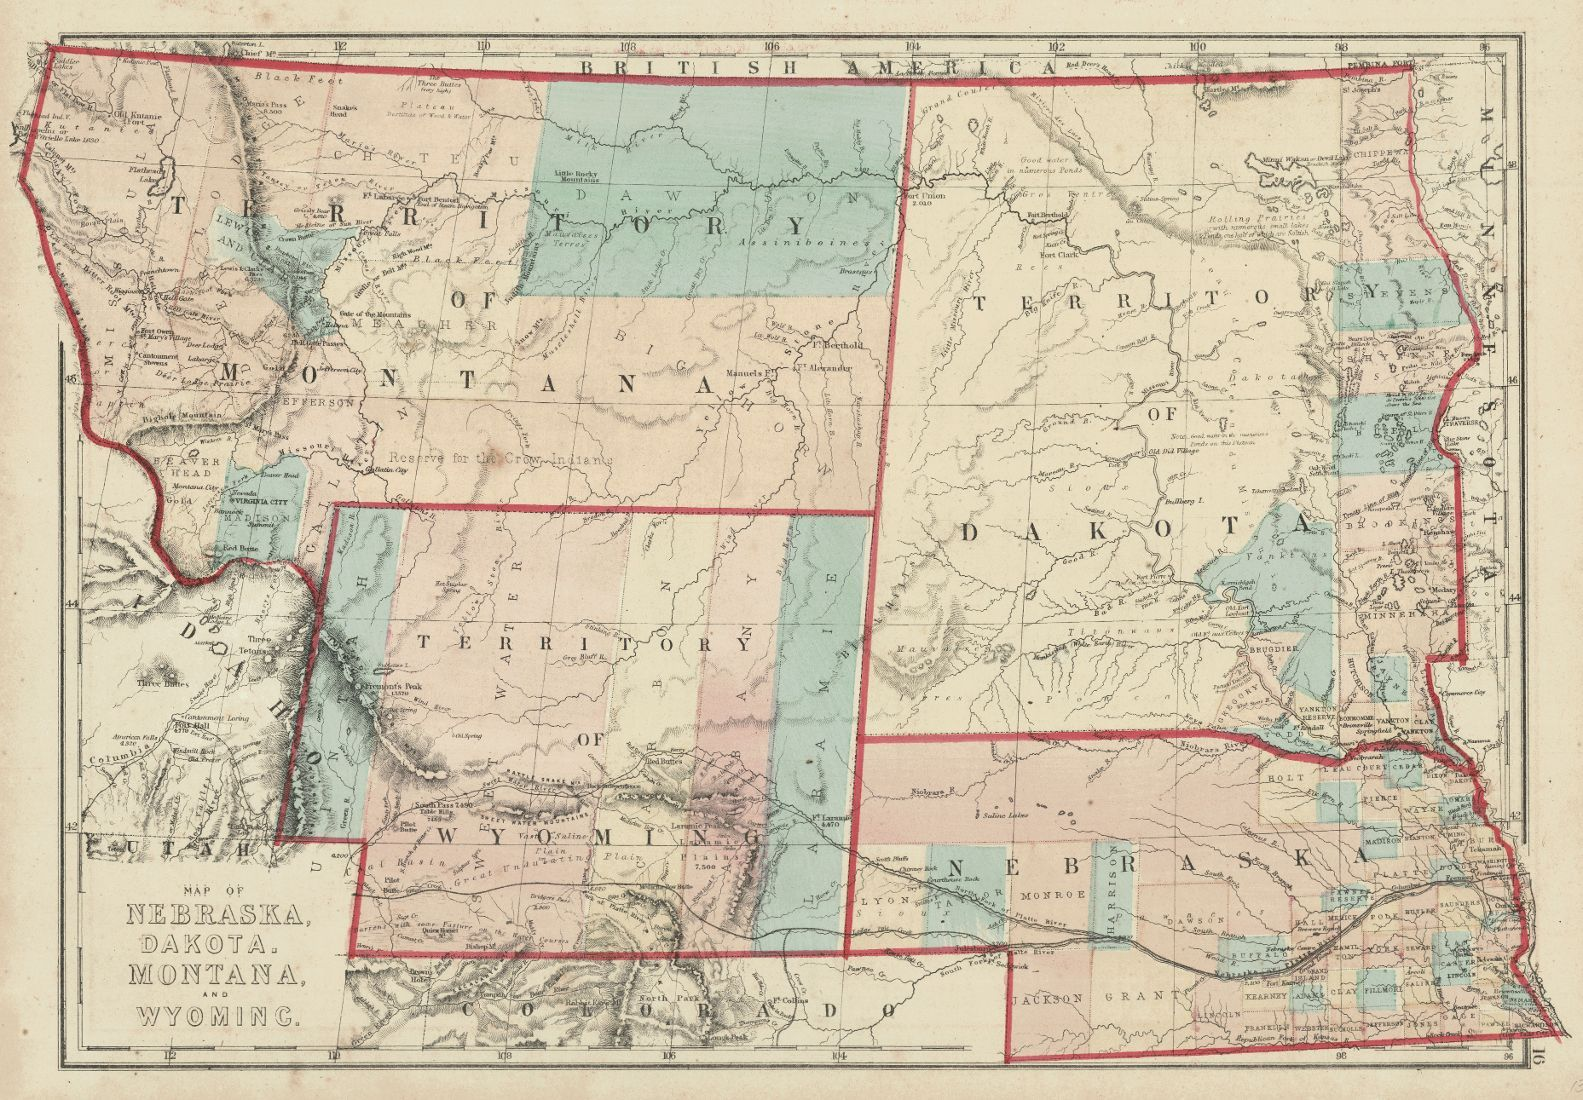 Map of Nebraska Dakota Montana and Wyoming H H Hardesty Co 1875